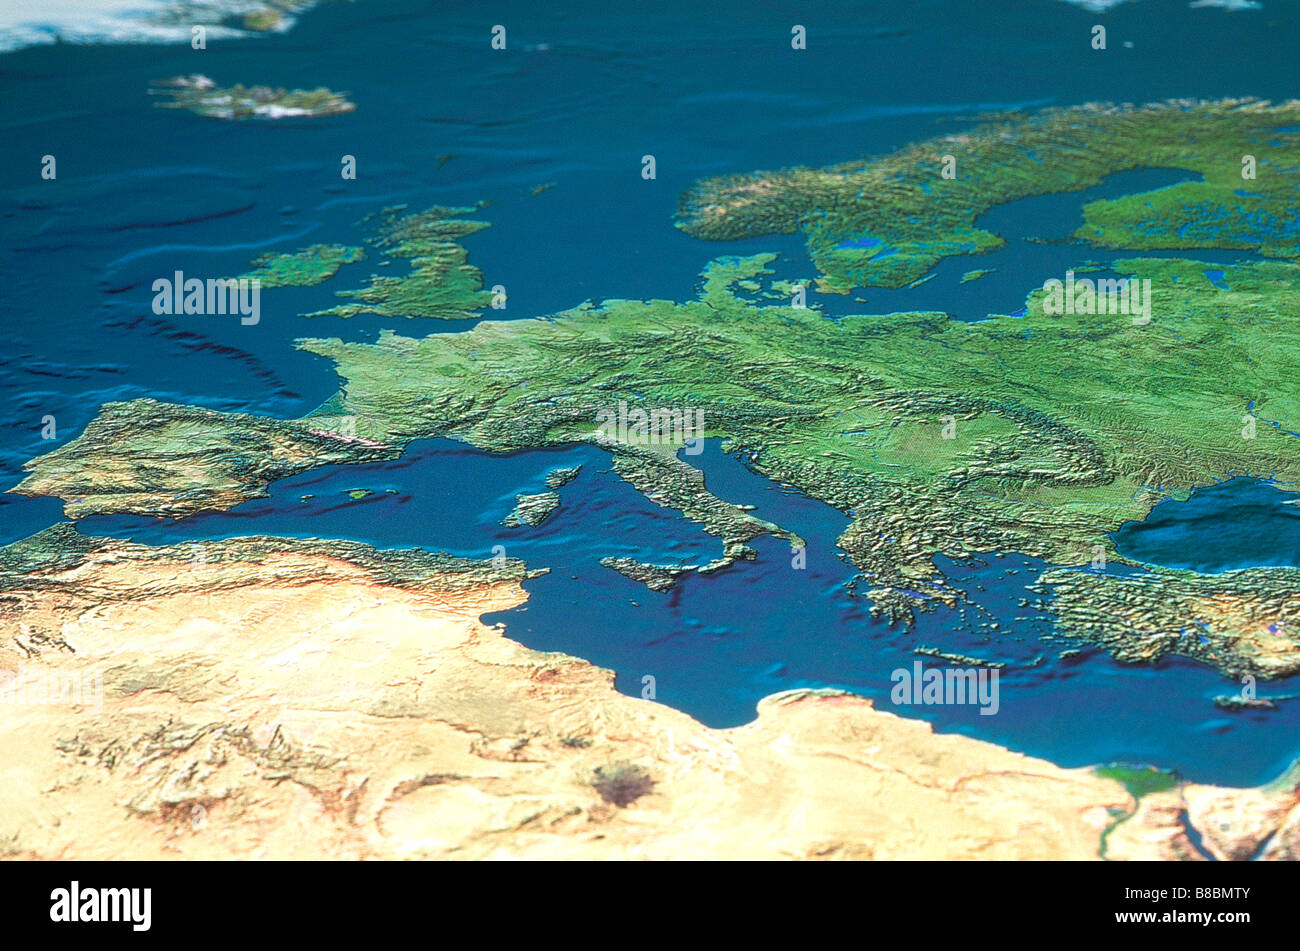 North Europe Map Stock Photos & North Europe Map Stock Images - Alamy